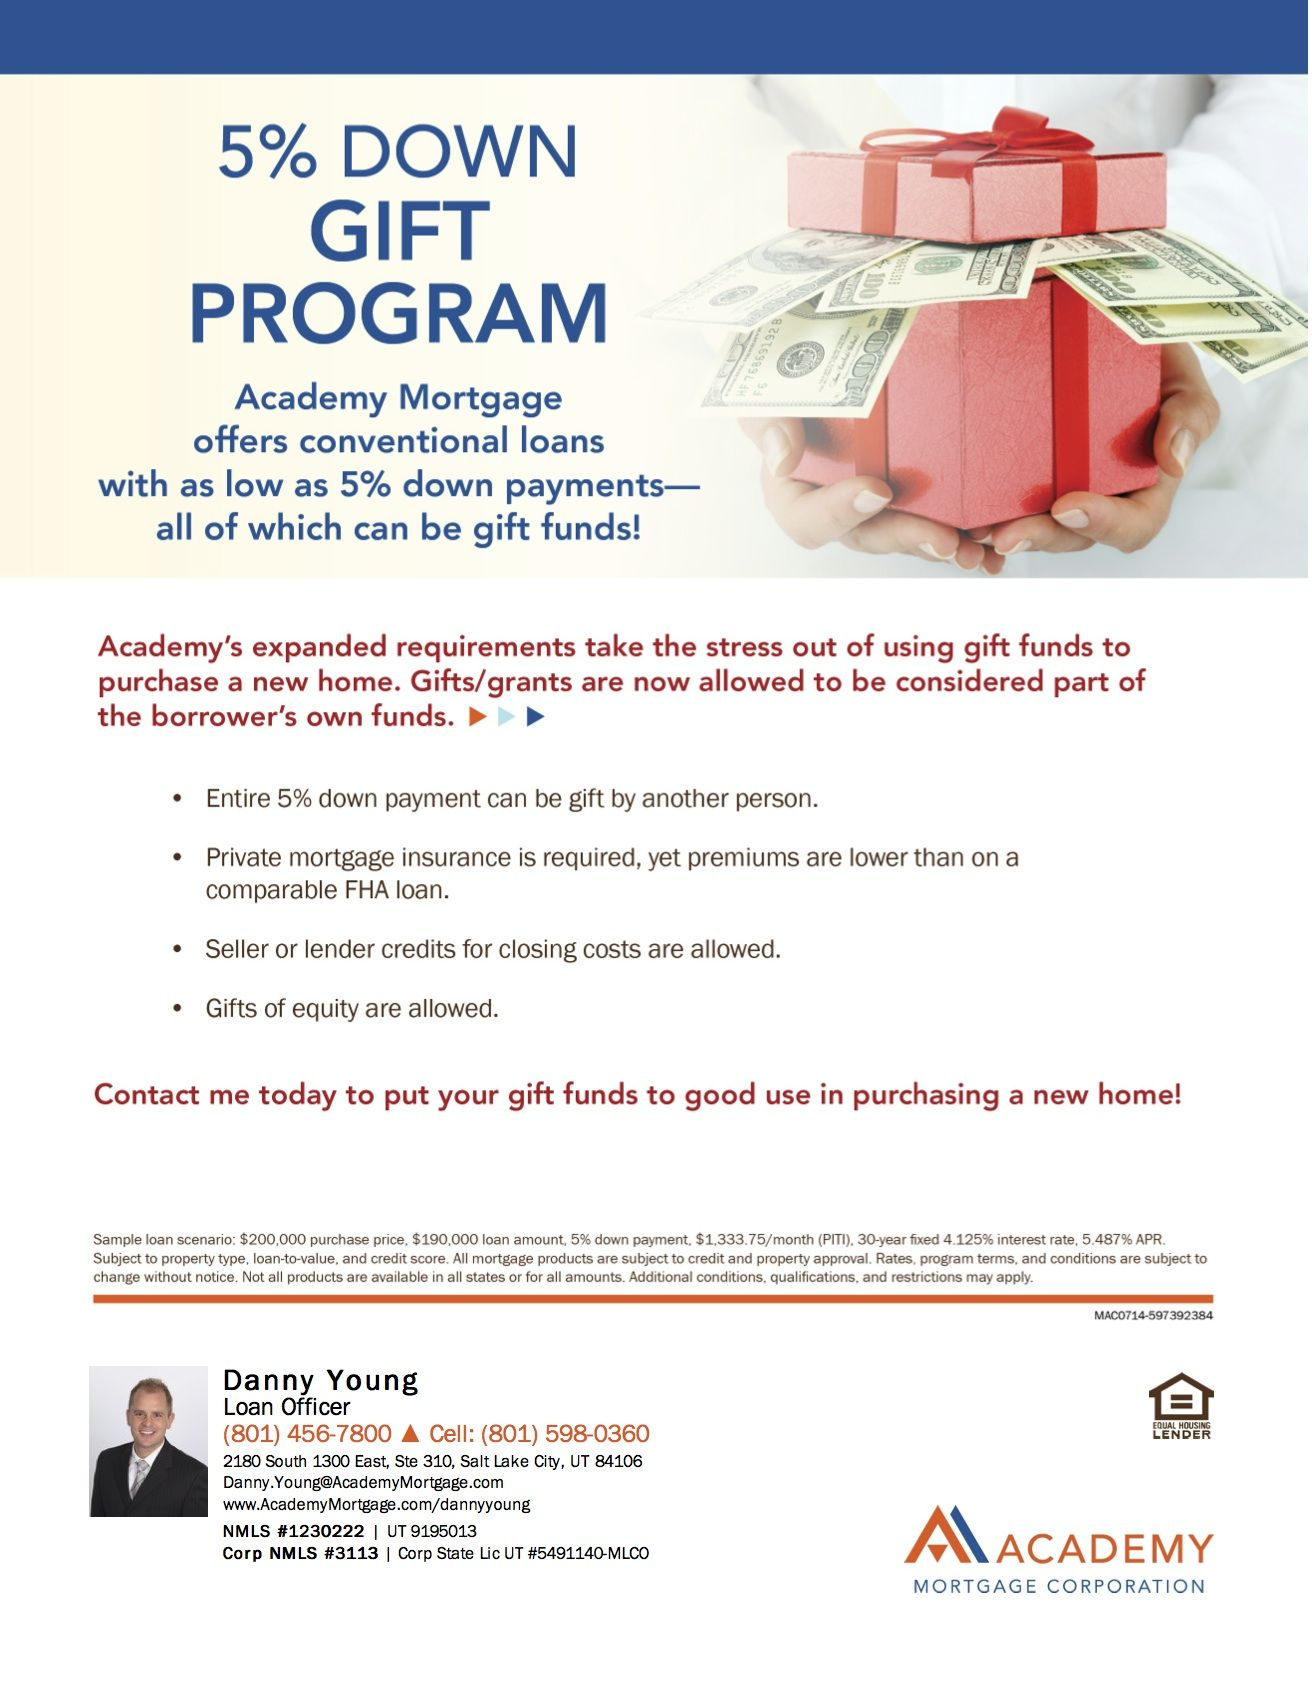 5 Down Gift Program On Conventional Loans With Dsquarehomeloanteam Academymortgage Gifted Program Conventional Loan Business Loans